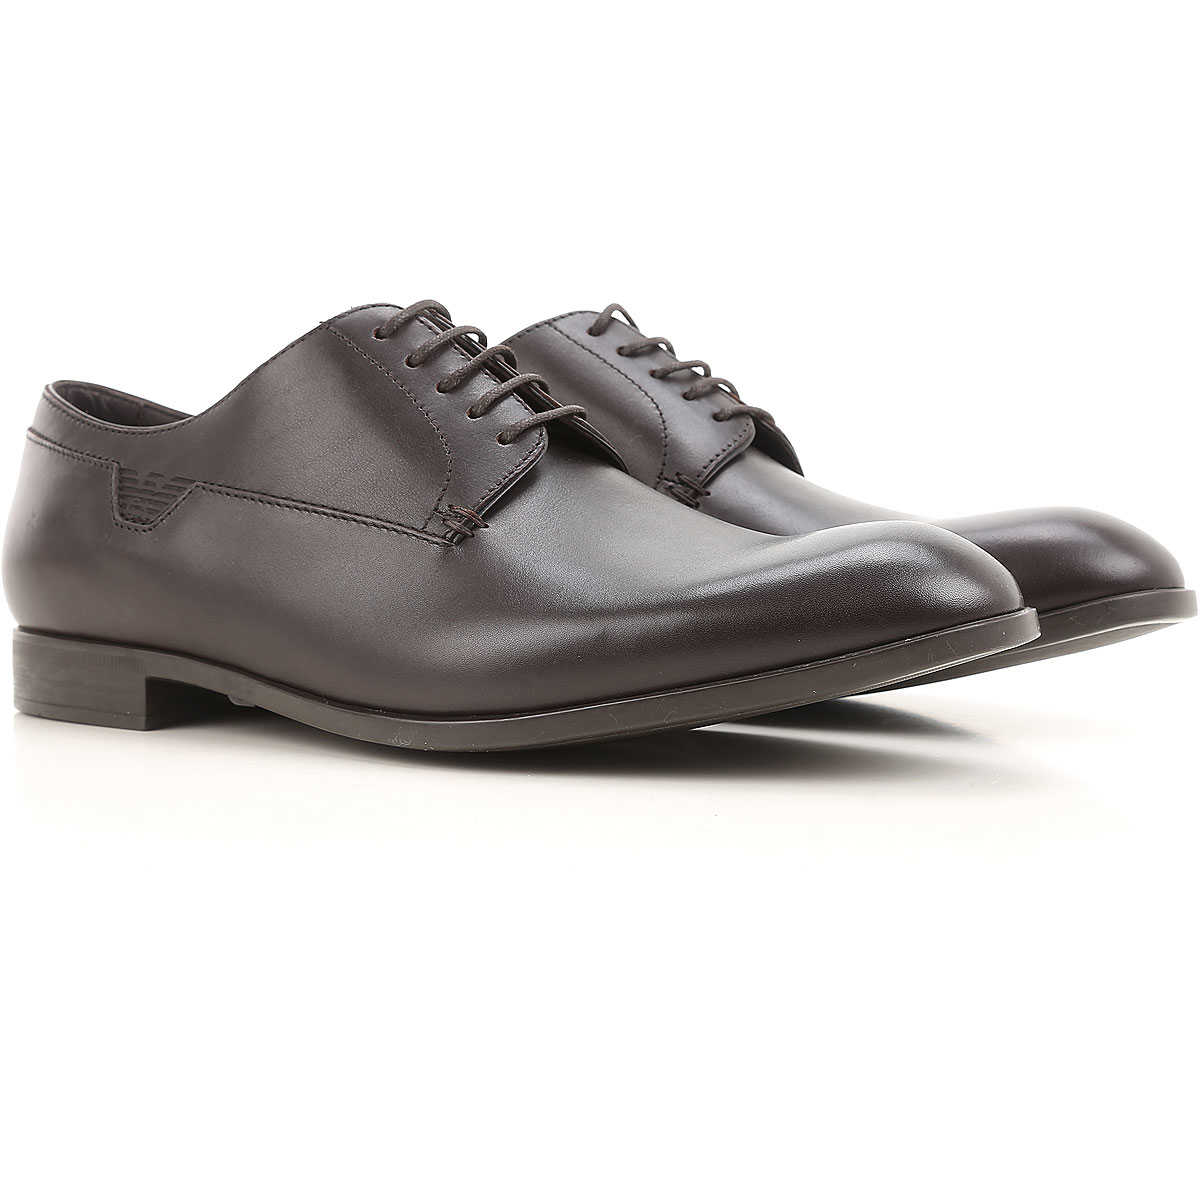 Emporio Armani Lace Up Shoes for Men Oxfords Derbies and Brogues On Sale SE - GOOFASH